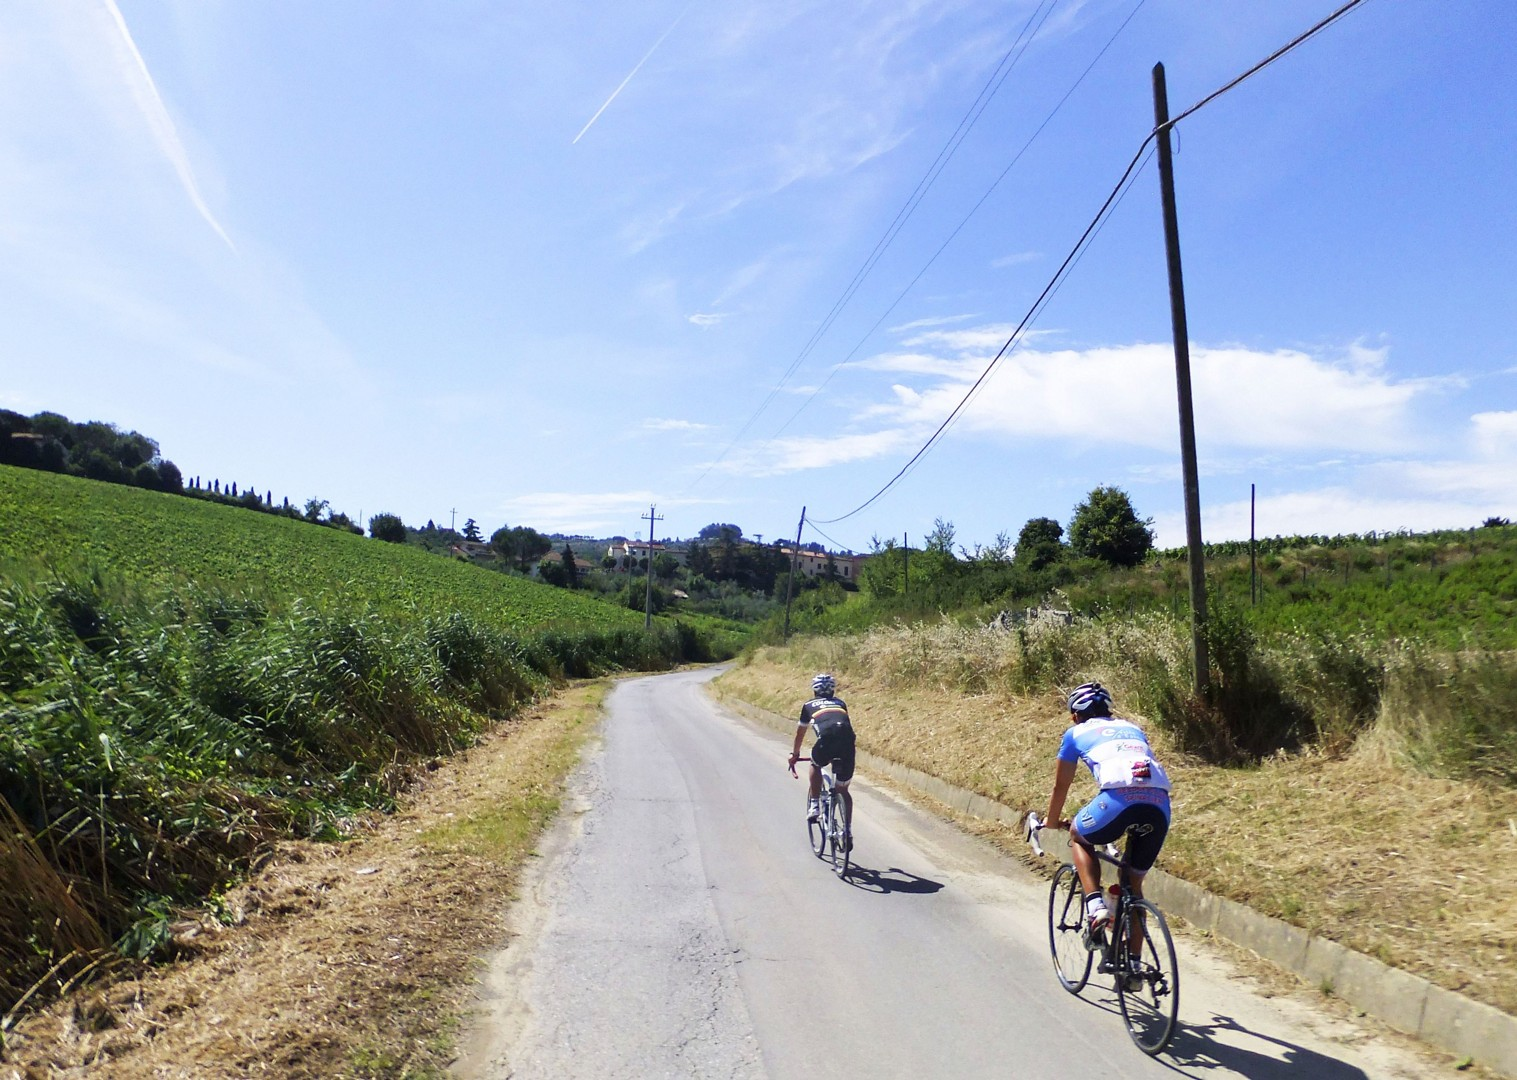 gavi-guided-road-cycling-holiday-italy-piemonte-la-strada-del-vino.jpg - NEW! Italy - Piemonte - La Strada del Vino - Road Cycling